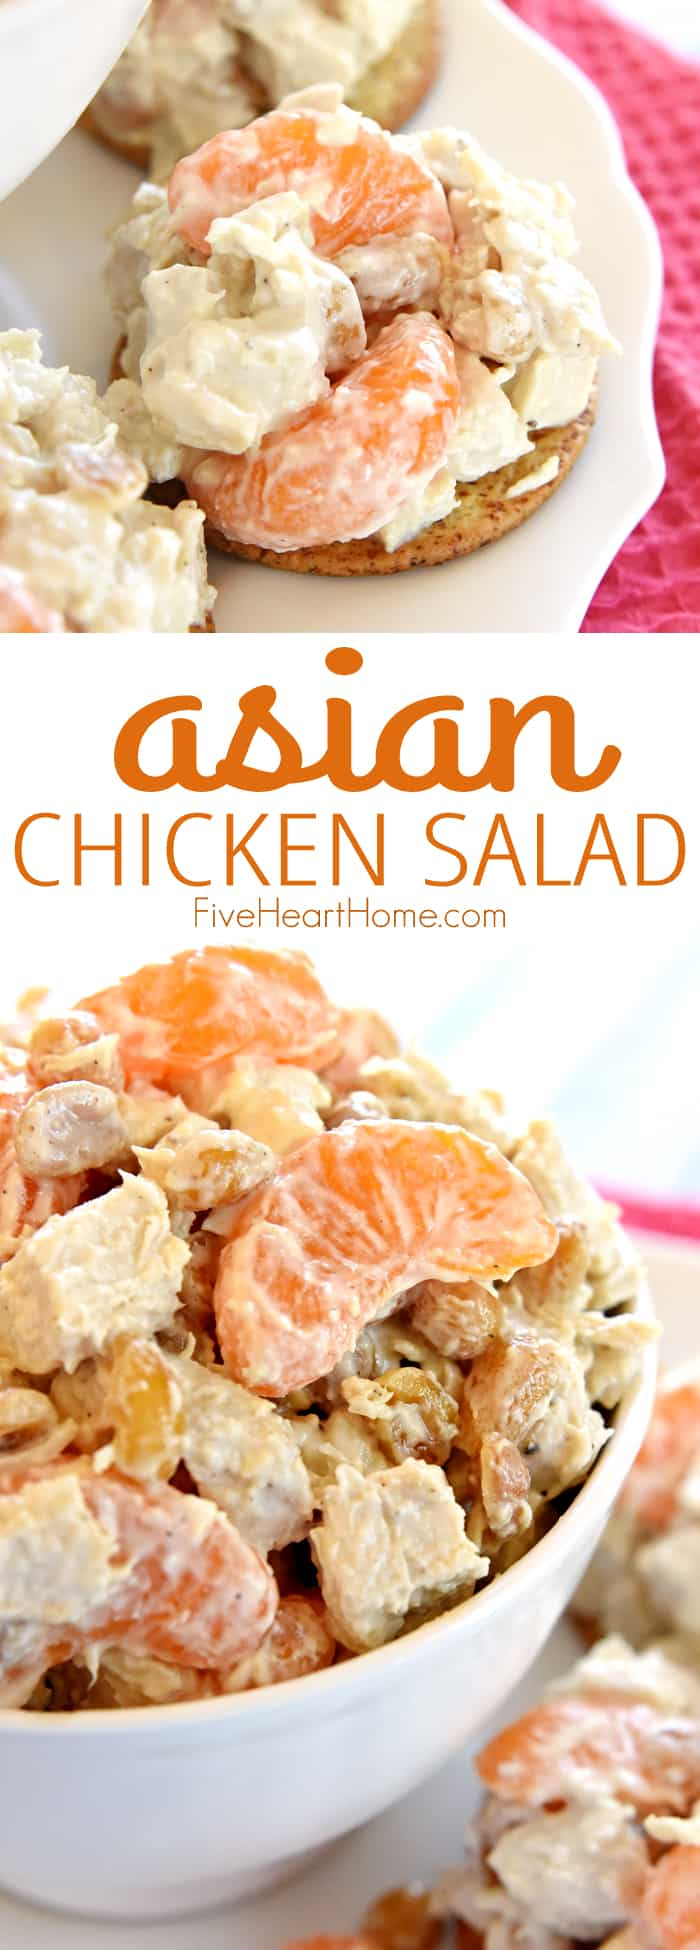 Asian spin on Sonoma Chicken Salad Collage and Text Overlay